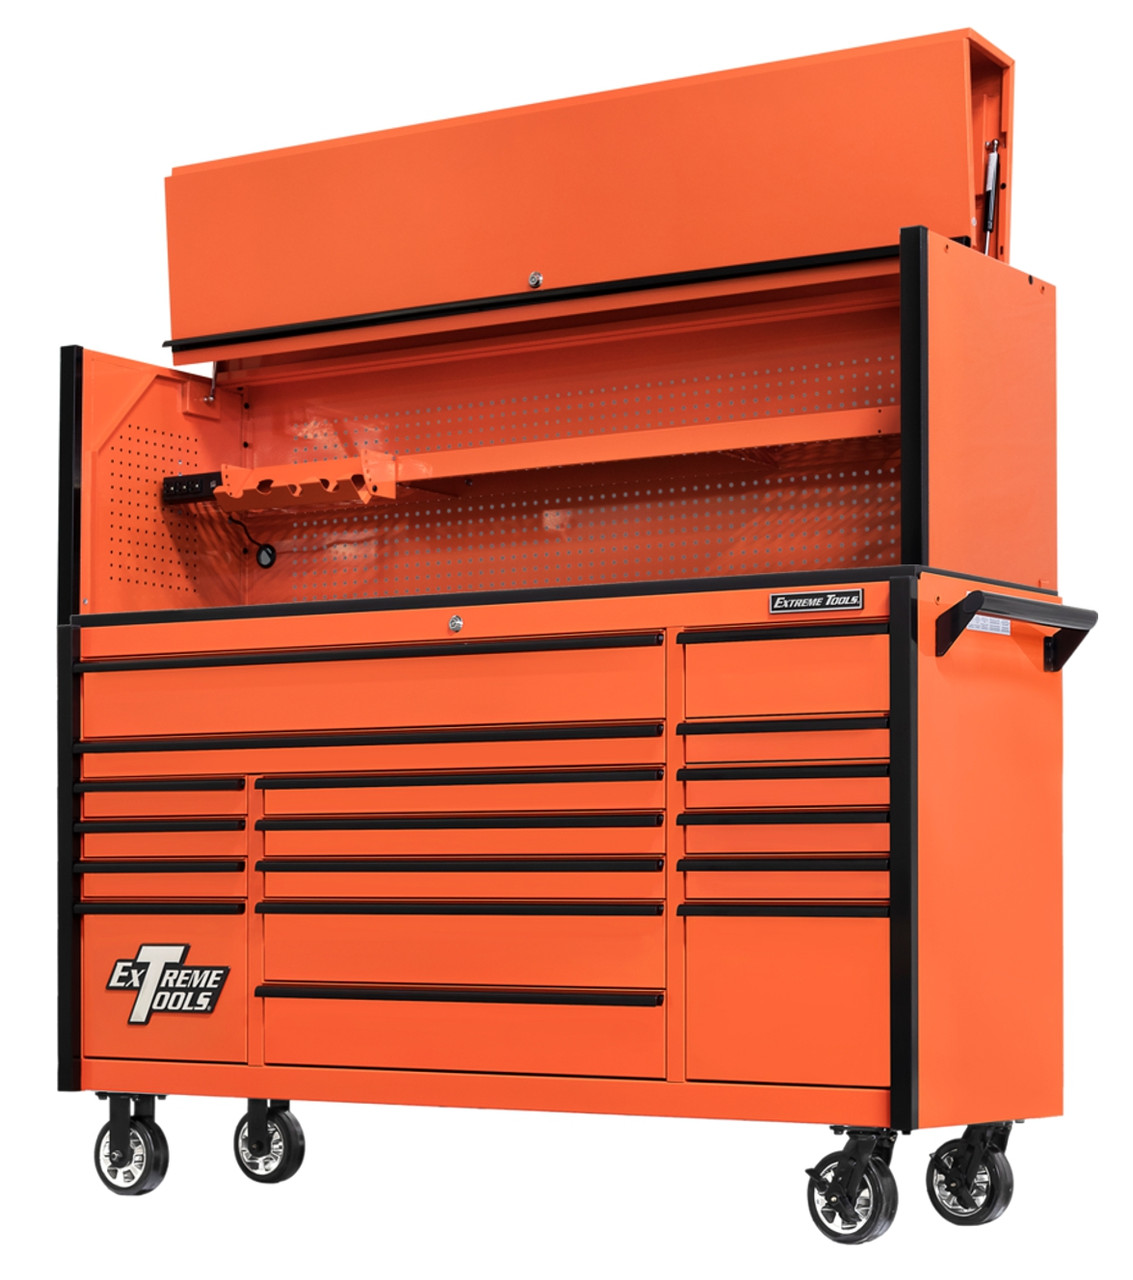 """Extreme Tools DX722117RCORBK and DX722101HCORBK Combo - DX Series 72"""", 17 Drawer, 21"""" Deep Roller Cabinet and Matching Hutch - Orange with Black Drawer Pulls"""